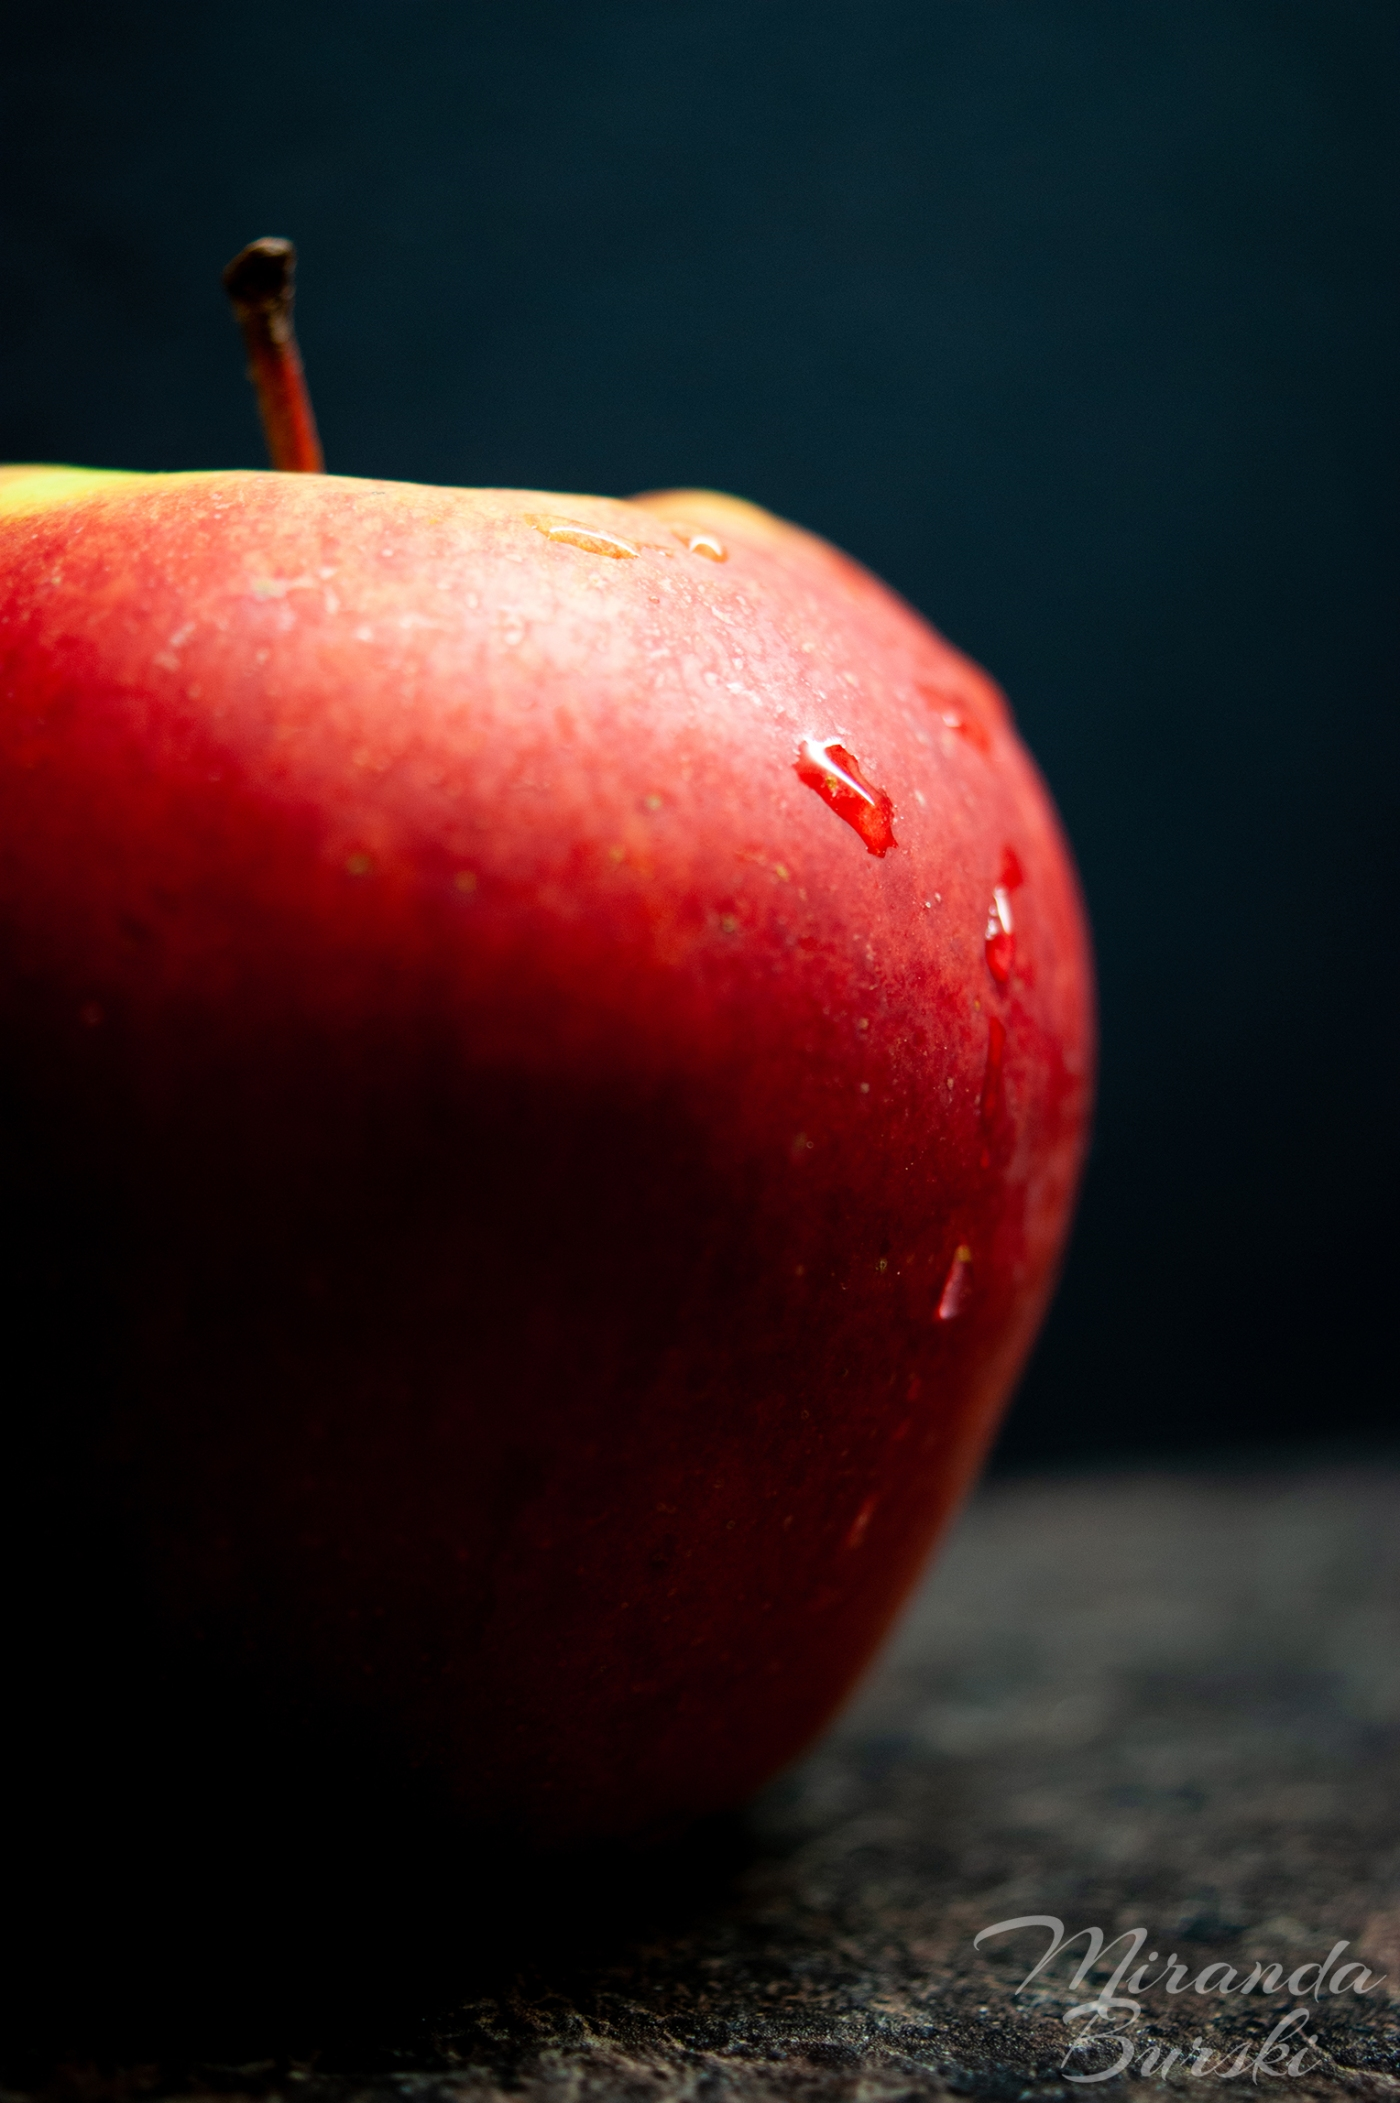 An apple on a black background.